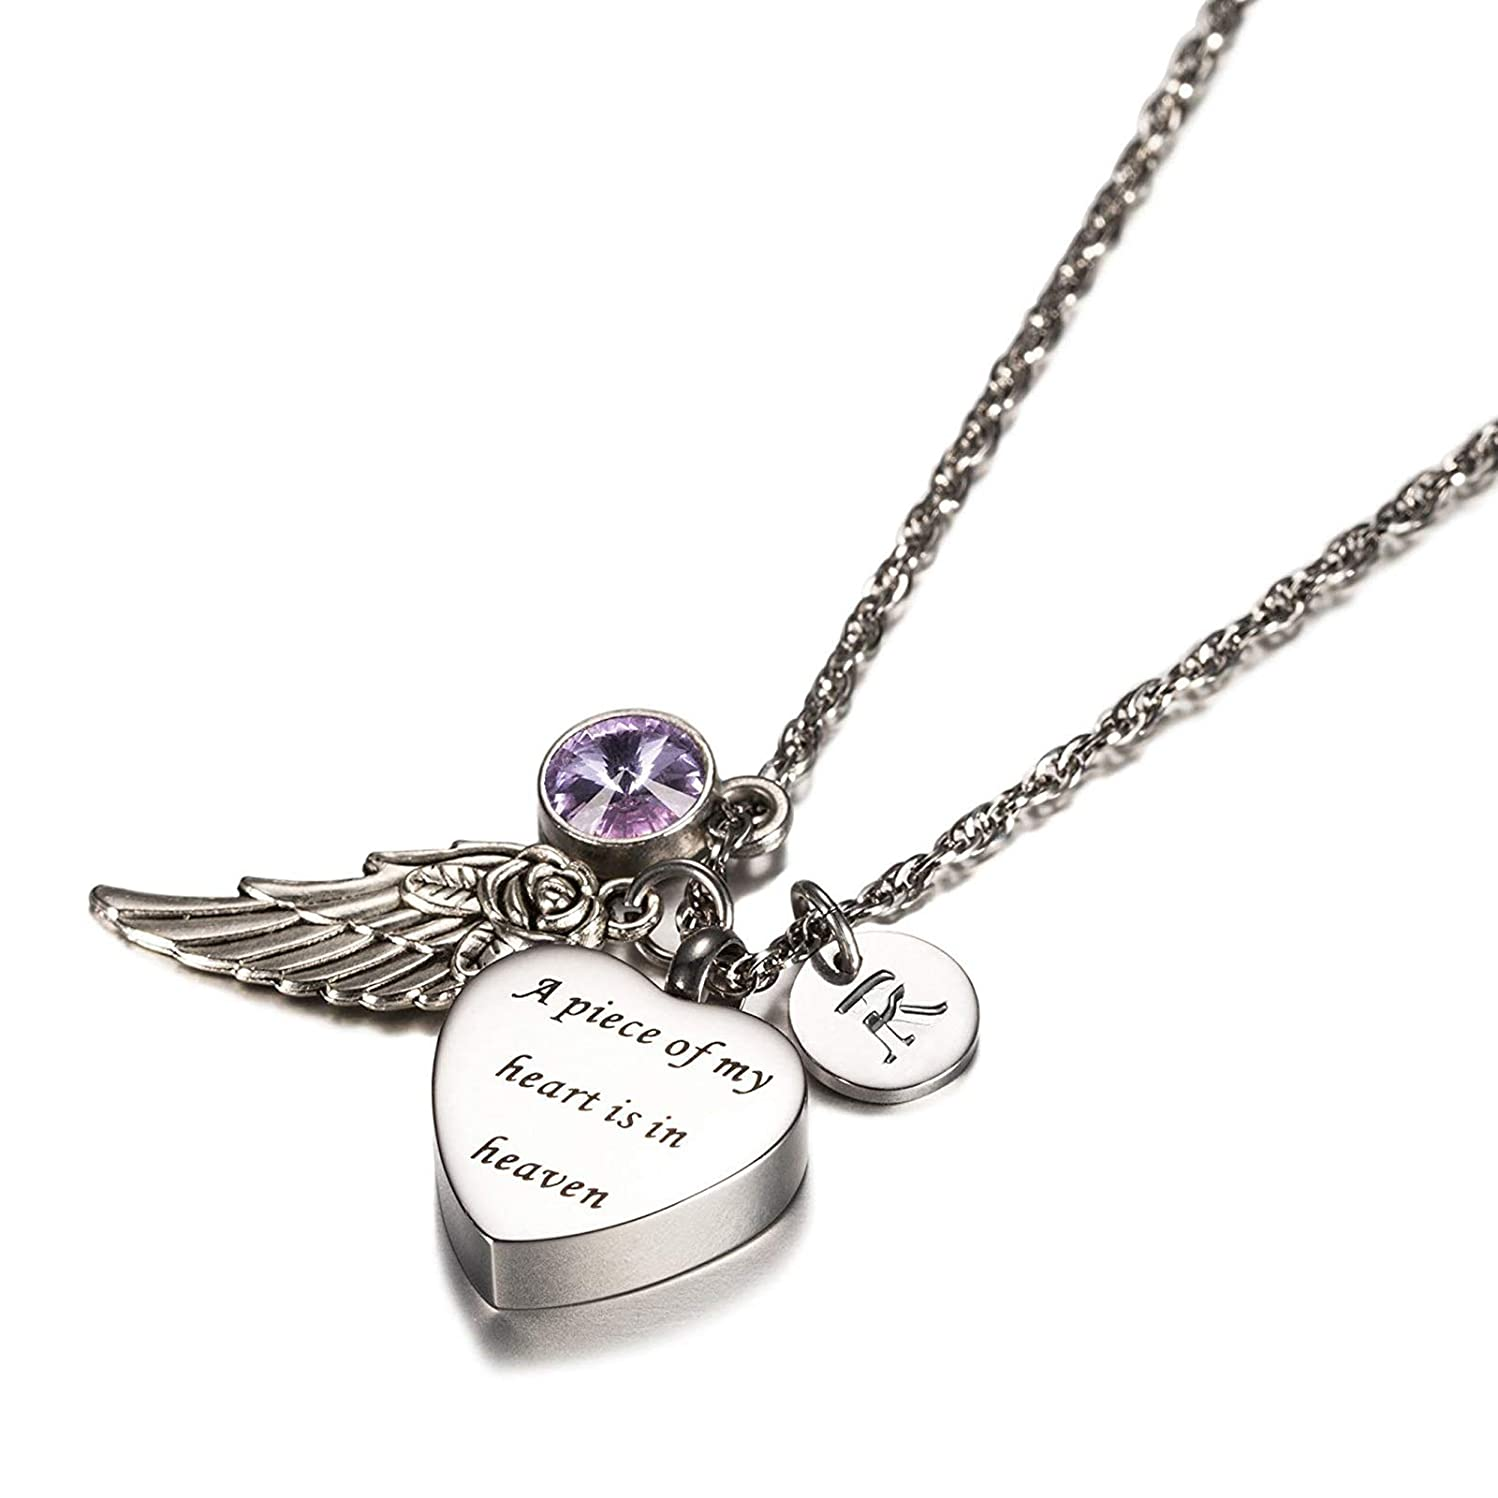 KnSam Jewelry A Piece of My Heart in Heaven Stainless Steel Heart Urn Necklace with Angel Wing, 26 Letters & 12 Birthstones Ashes Pendant Memorial Necklace